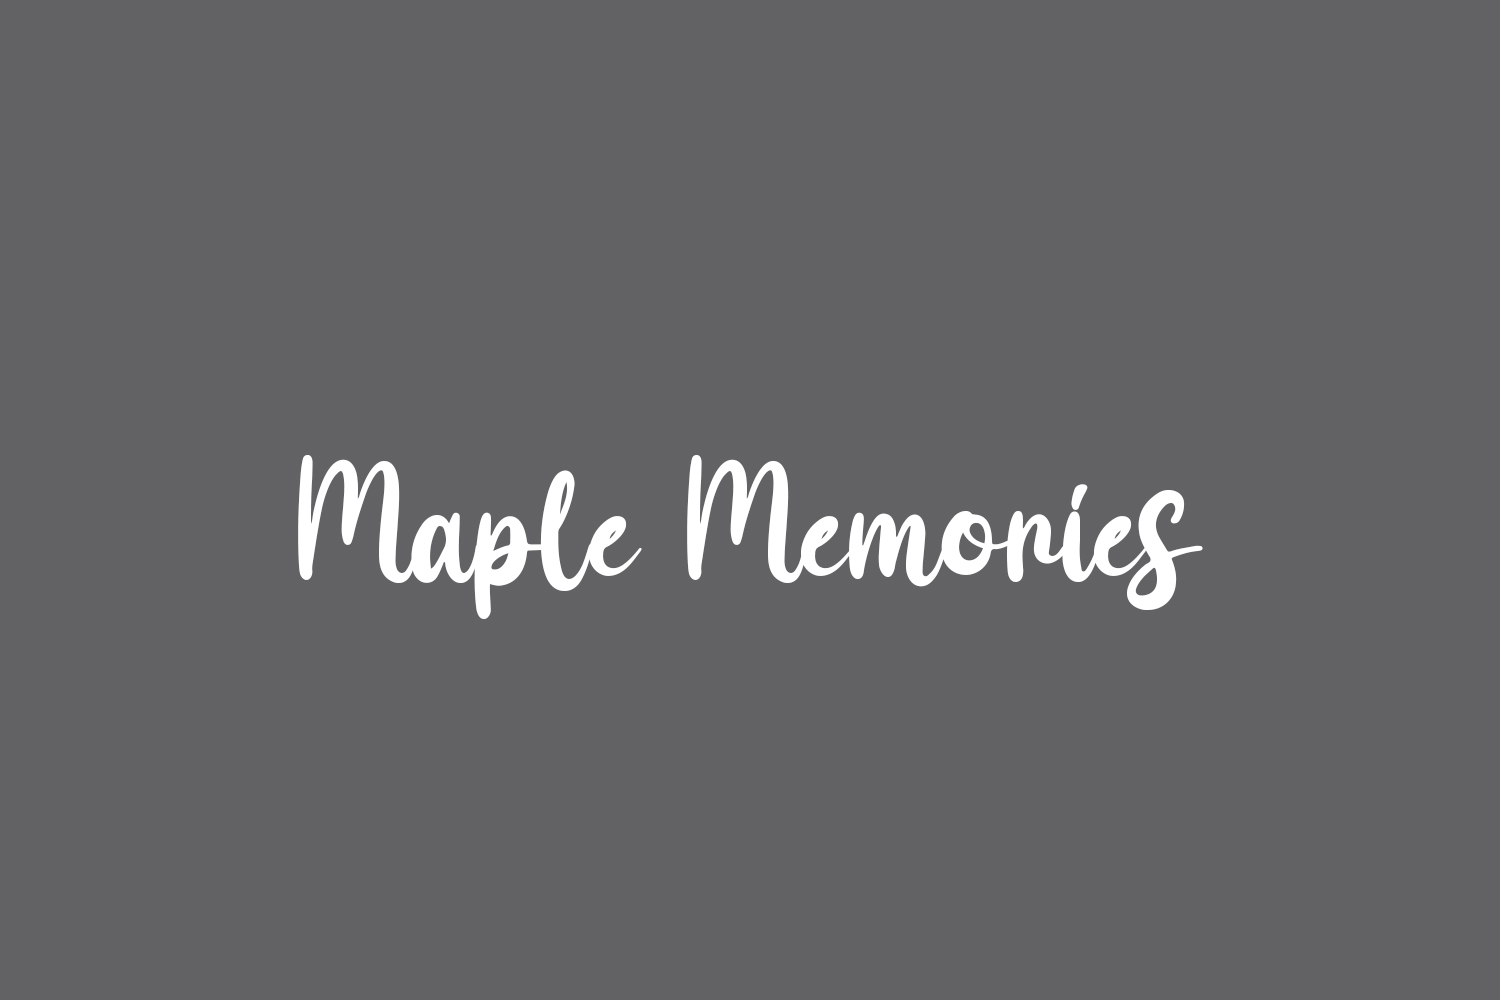 Maple Memories Free Font